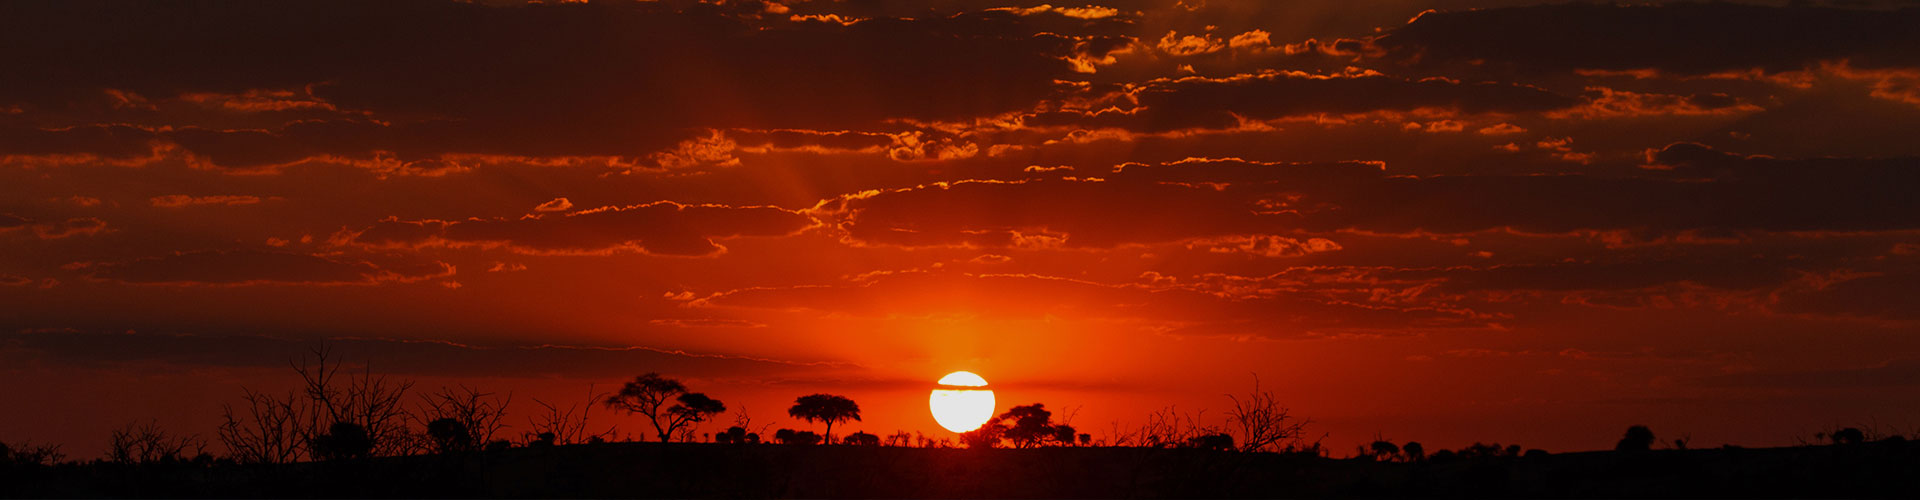 Landmark photograph of Botswana